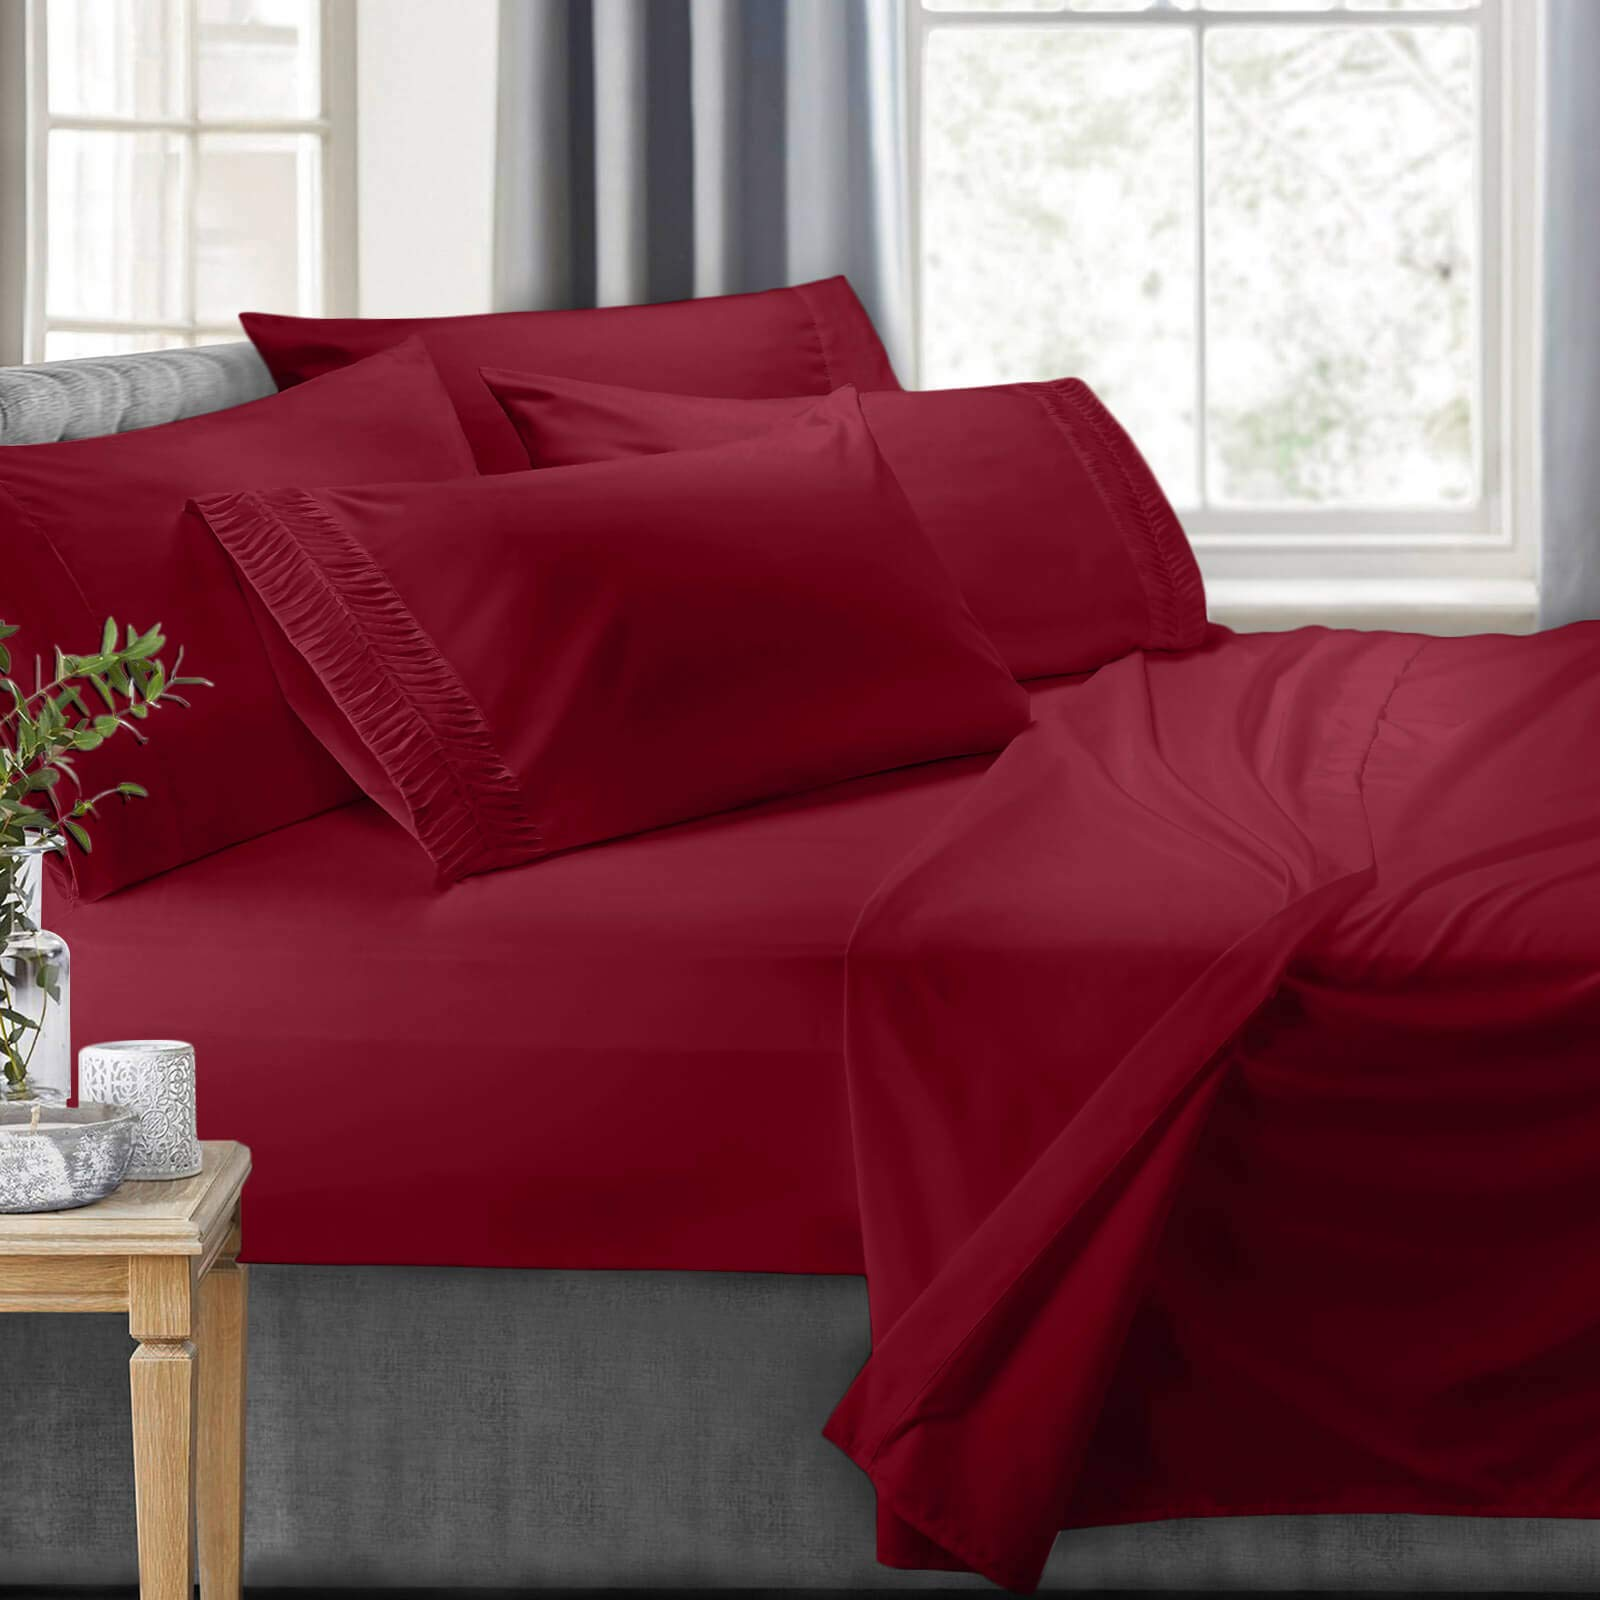 Clara Clark 6-Piece Bed Sheets - Luxury Pleated Sheets Set Bedding Sheet Set, 100% Soft Brushed Microfiber Flat Sheet, Fitted Sheet, Pillowcases Cool & Breathable - Queen - Burgundy